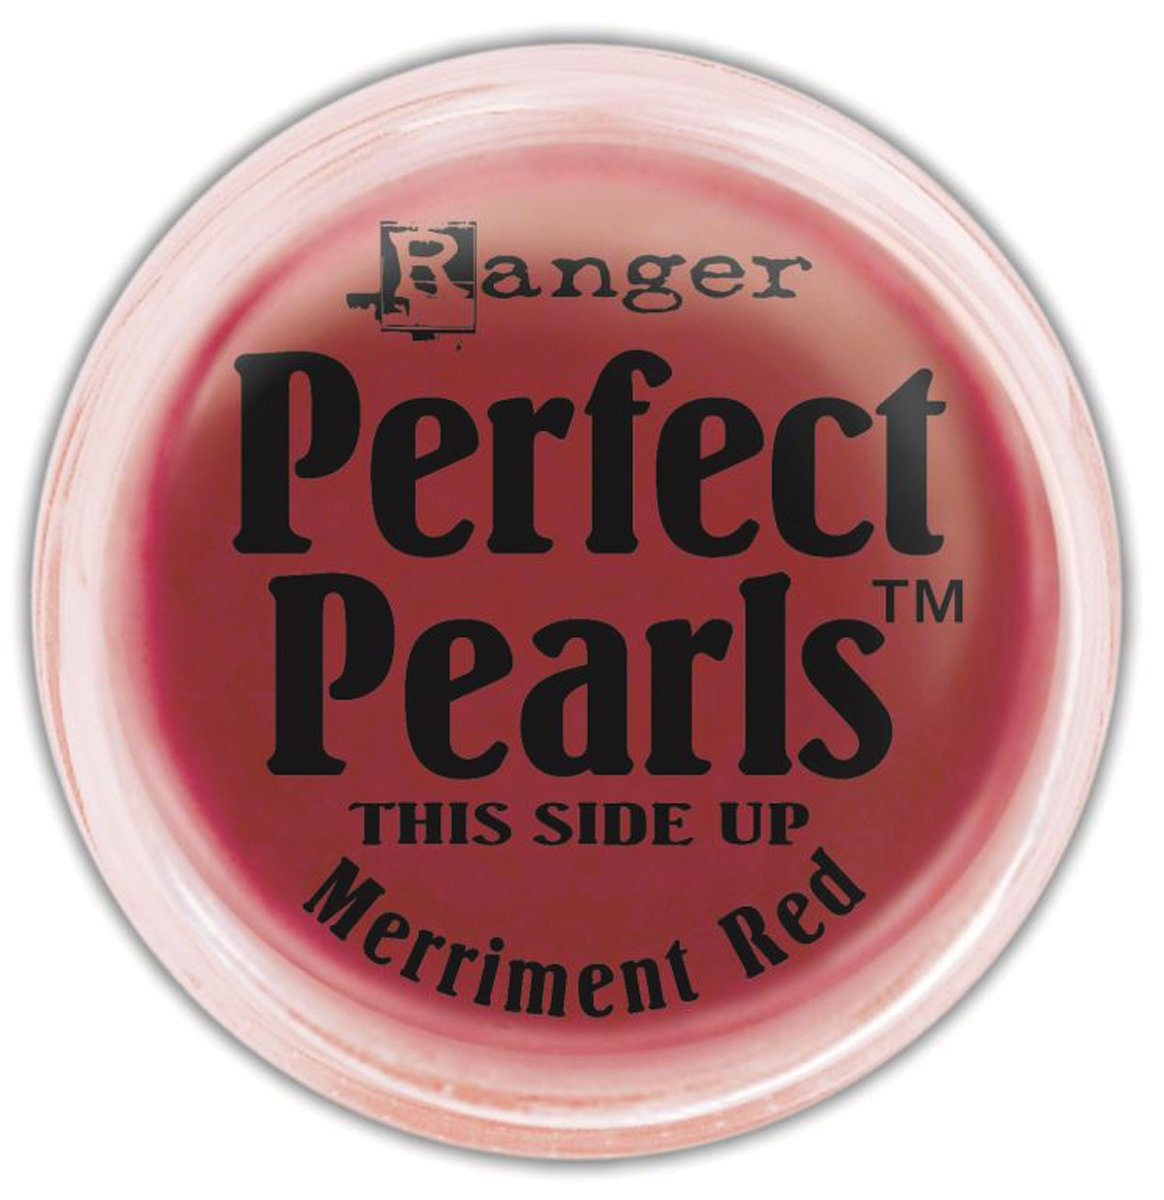 Ranger Perfect Pearls Pigment Powder, 1-Ounce, Merriment Red PPP-36838